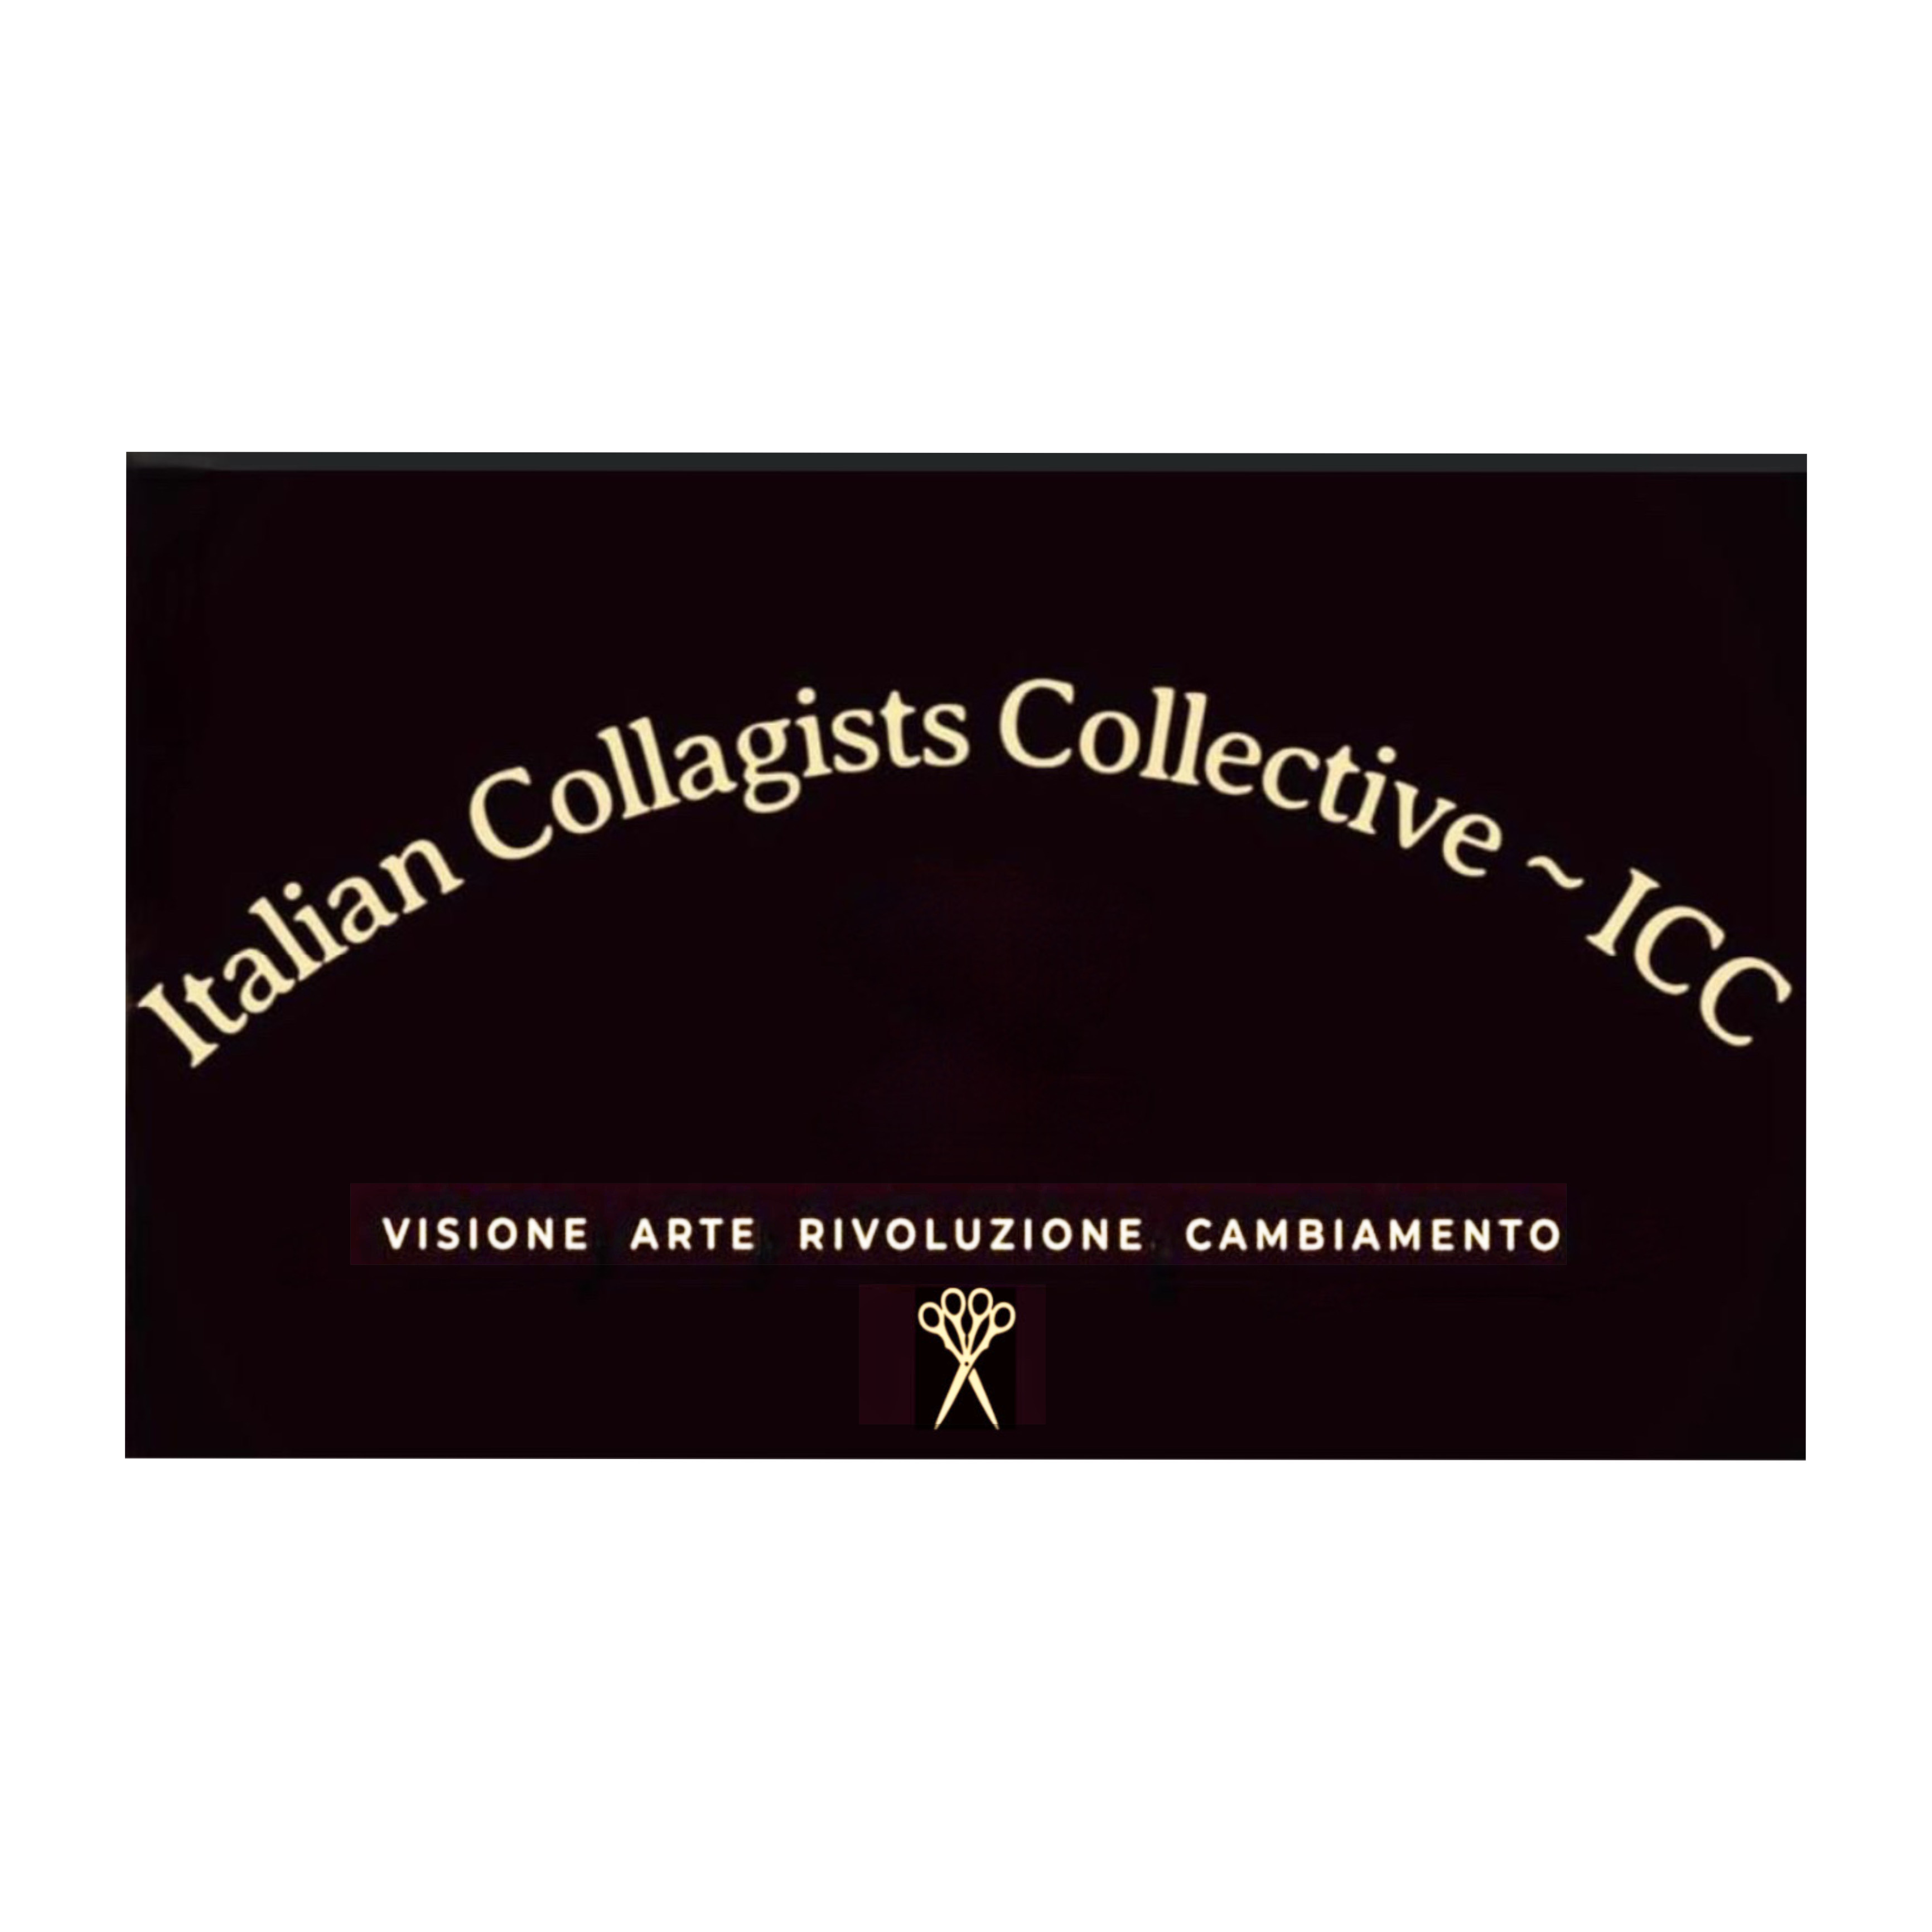 Italian Collagists Collective